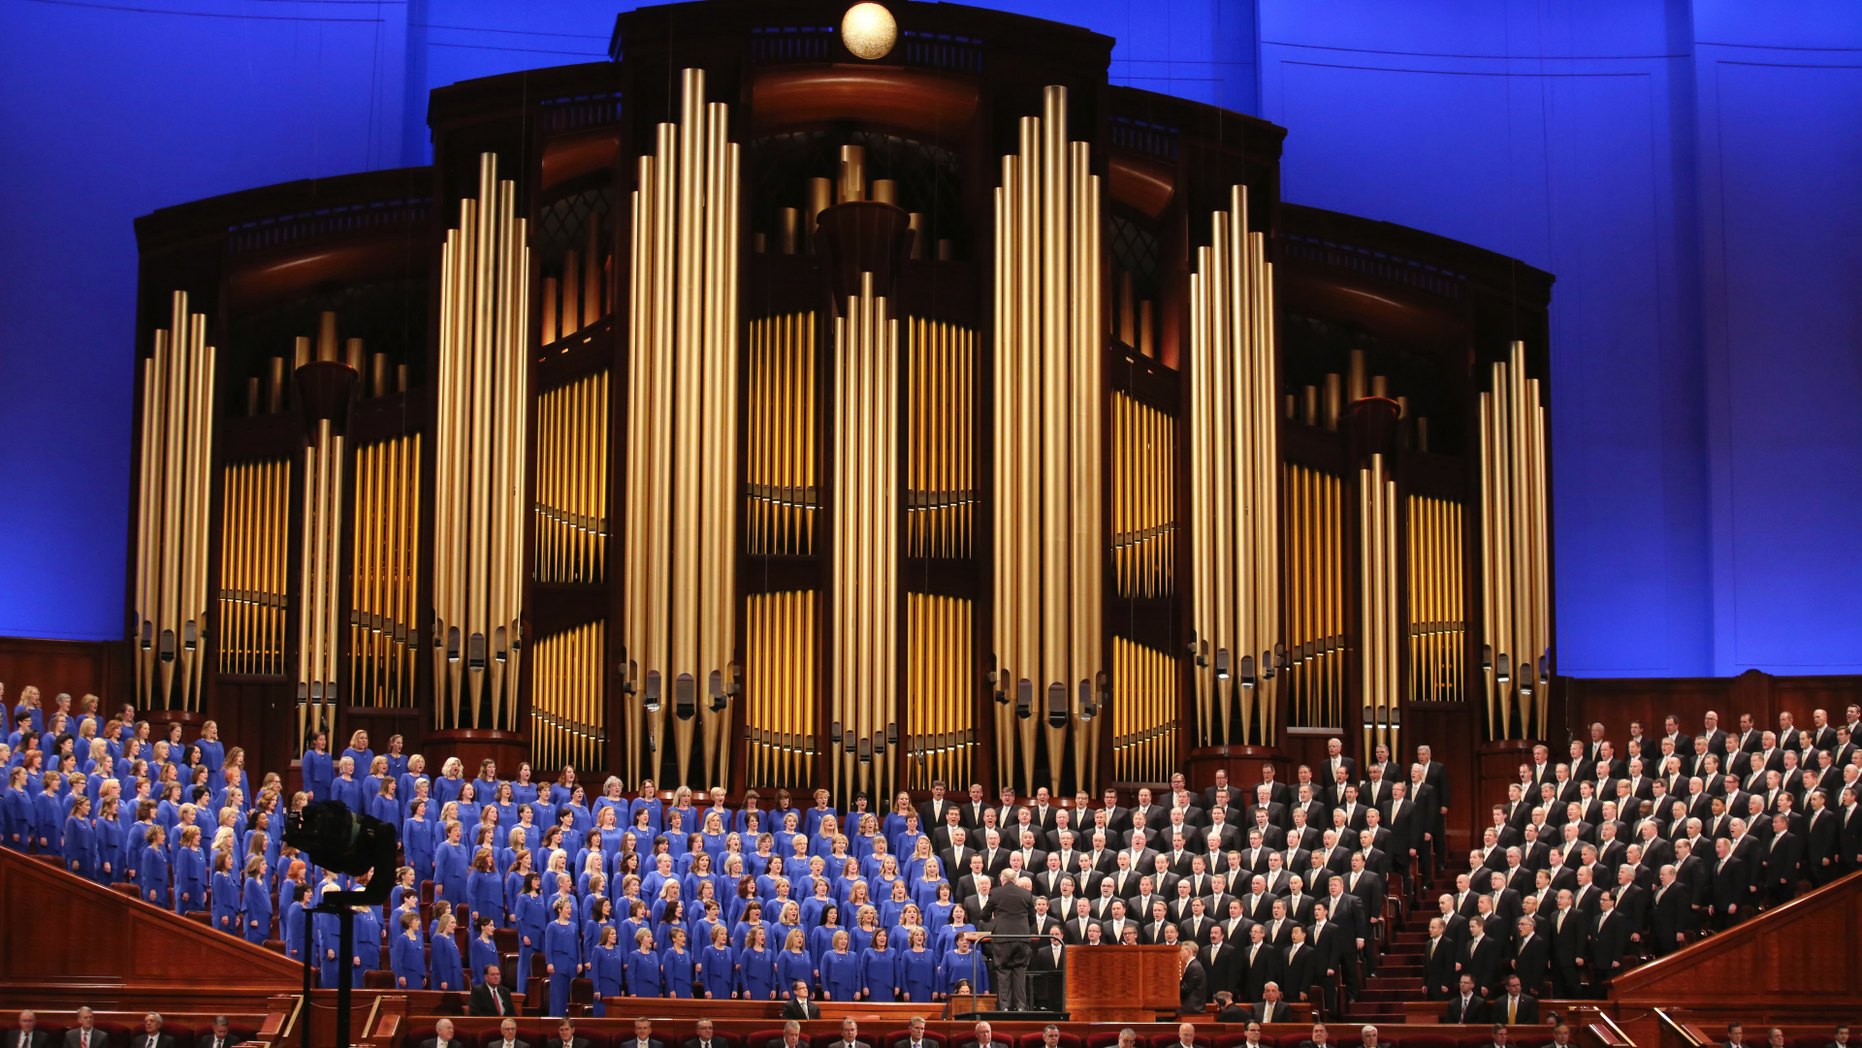 "FILE - In this March 31, 2018, file photo, The Mormon Tabernacle Choir perform during the twice-annual conference of The Church of Jesus Christ of Latter-day Saints, in Salt Lake City. The well-known Mormon Tabernacle Choir was renamed Friday, Oct. 5, 2018, to strip out the word Mormon in a move showing the faith's new president is serious about ending shorthand names for the religion that have been used for generations by church members and previously promoted by the church. The gospel singing group will now be called ""The Tabernacle Choir at Temple Square,"" The Church of Jesus Christ of Latter-day Saints said in a statement. (AP Photo/Rick Bowmer, File)"